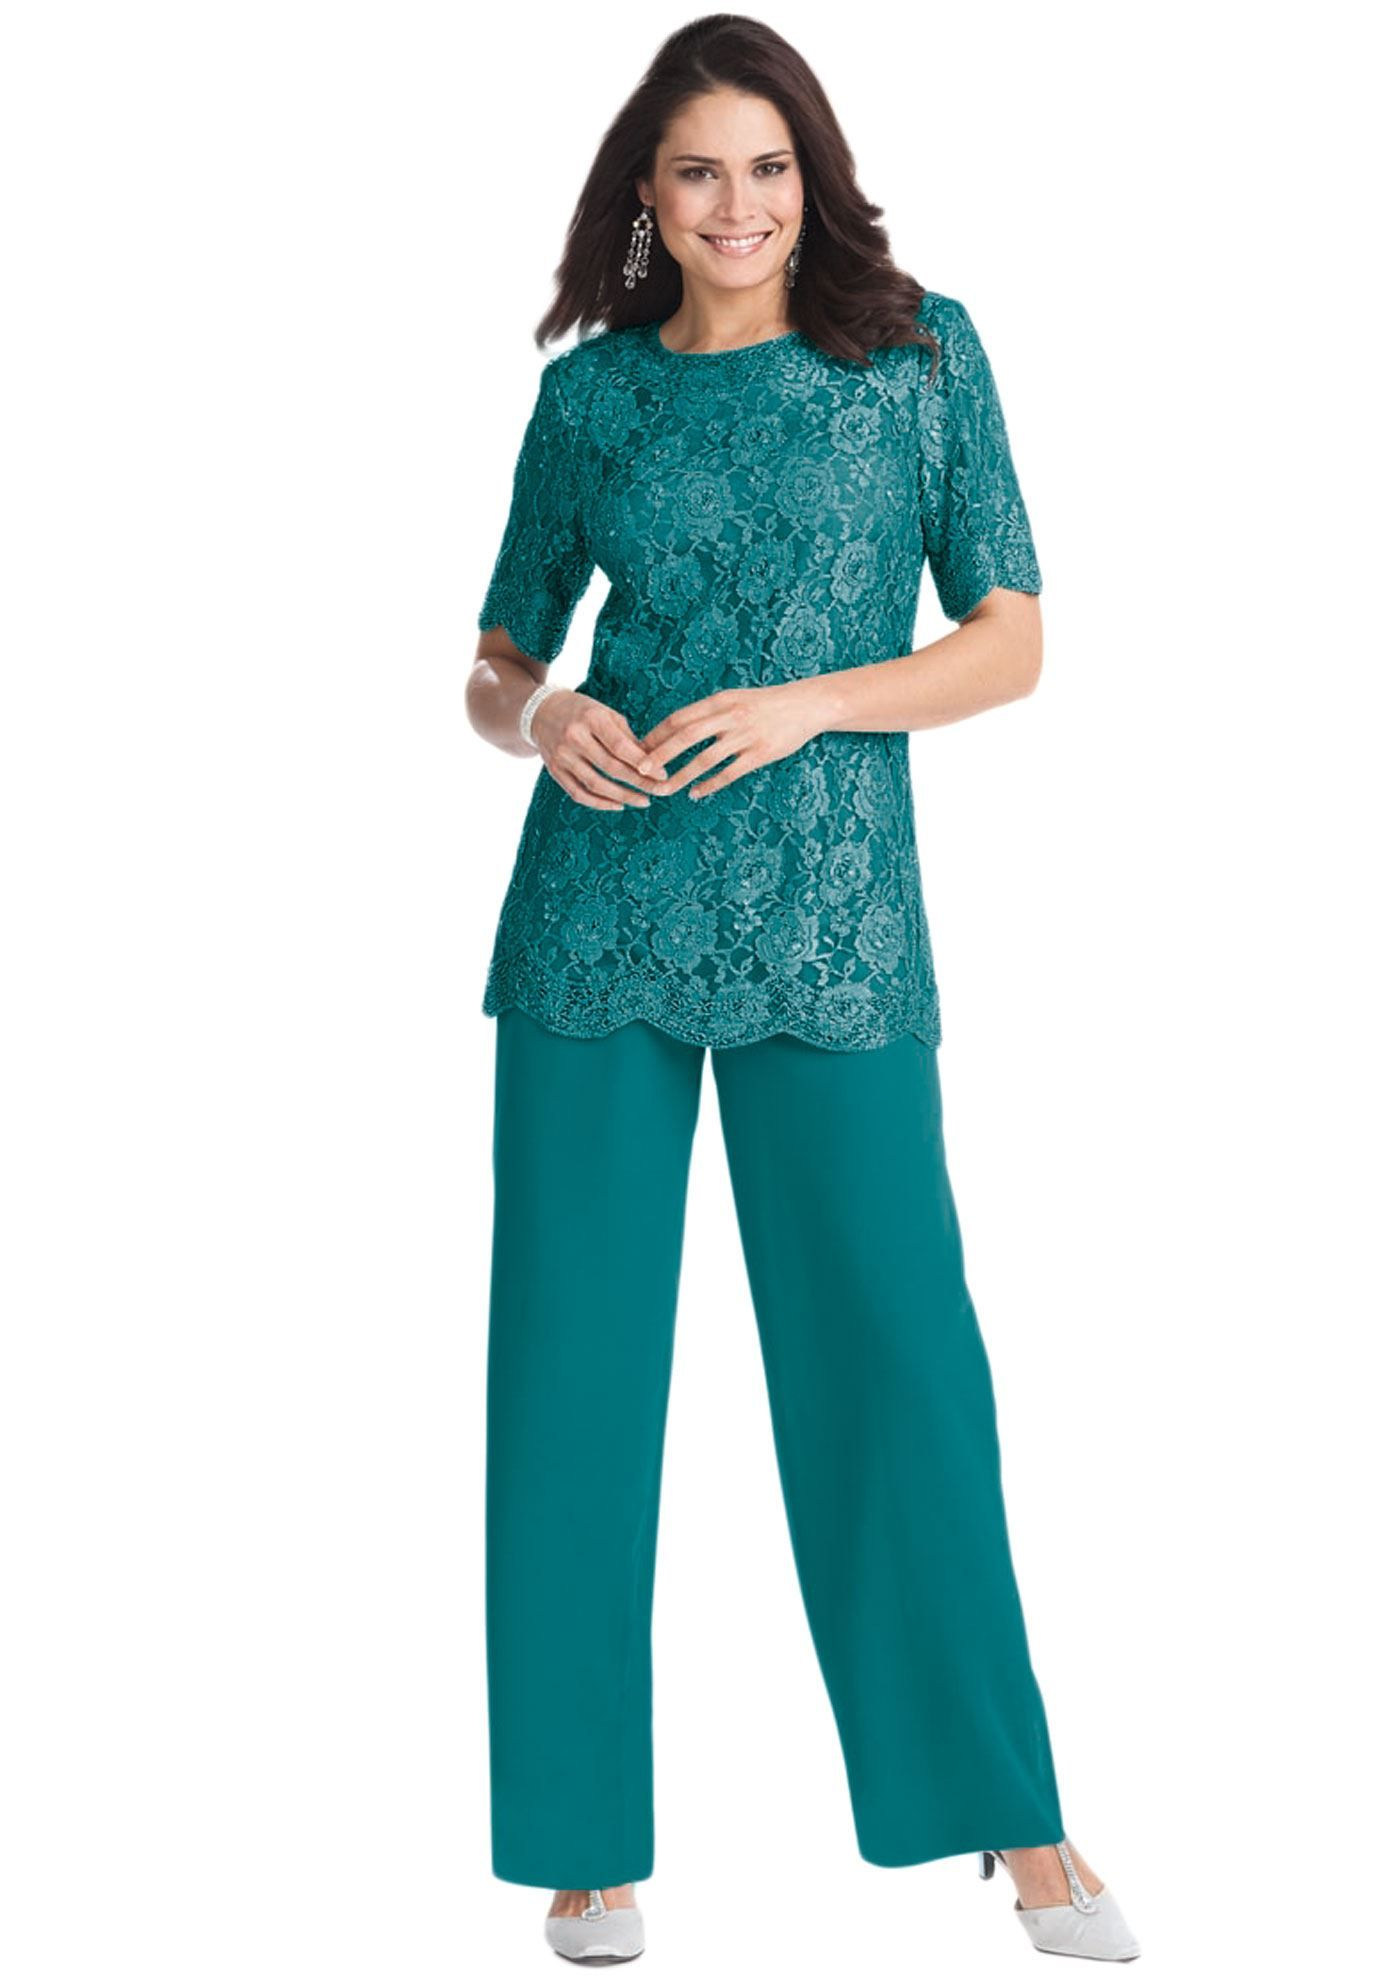 Lovely Plus Size, Short Sleeve Mother of the Bride Pant Suit ...